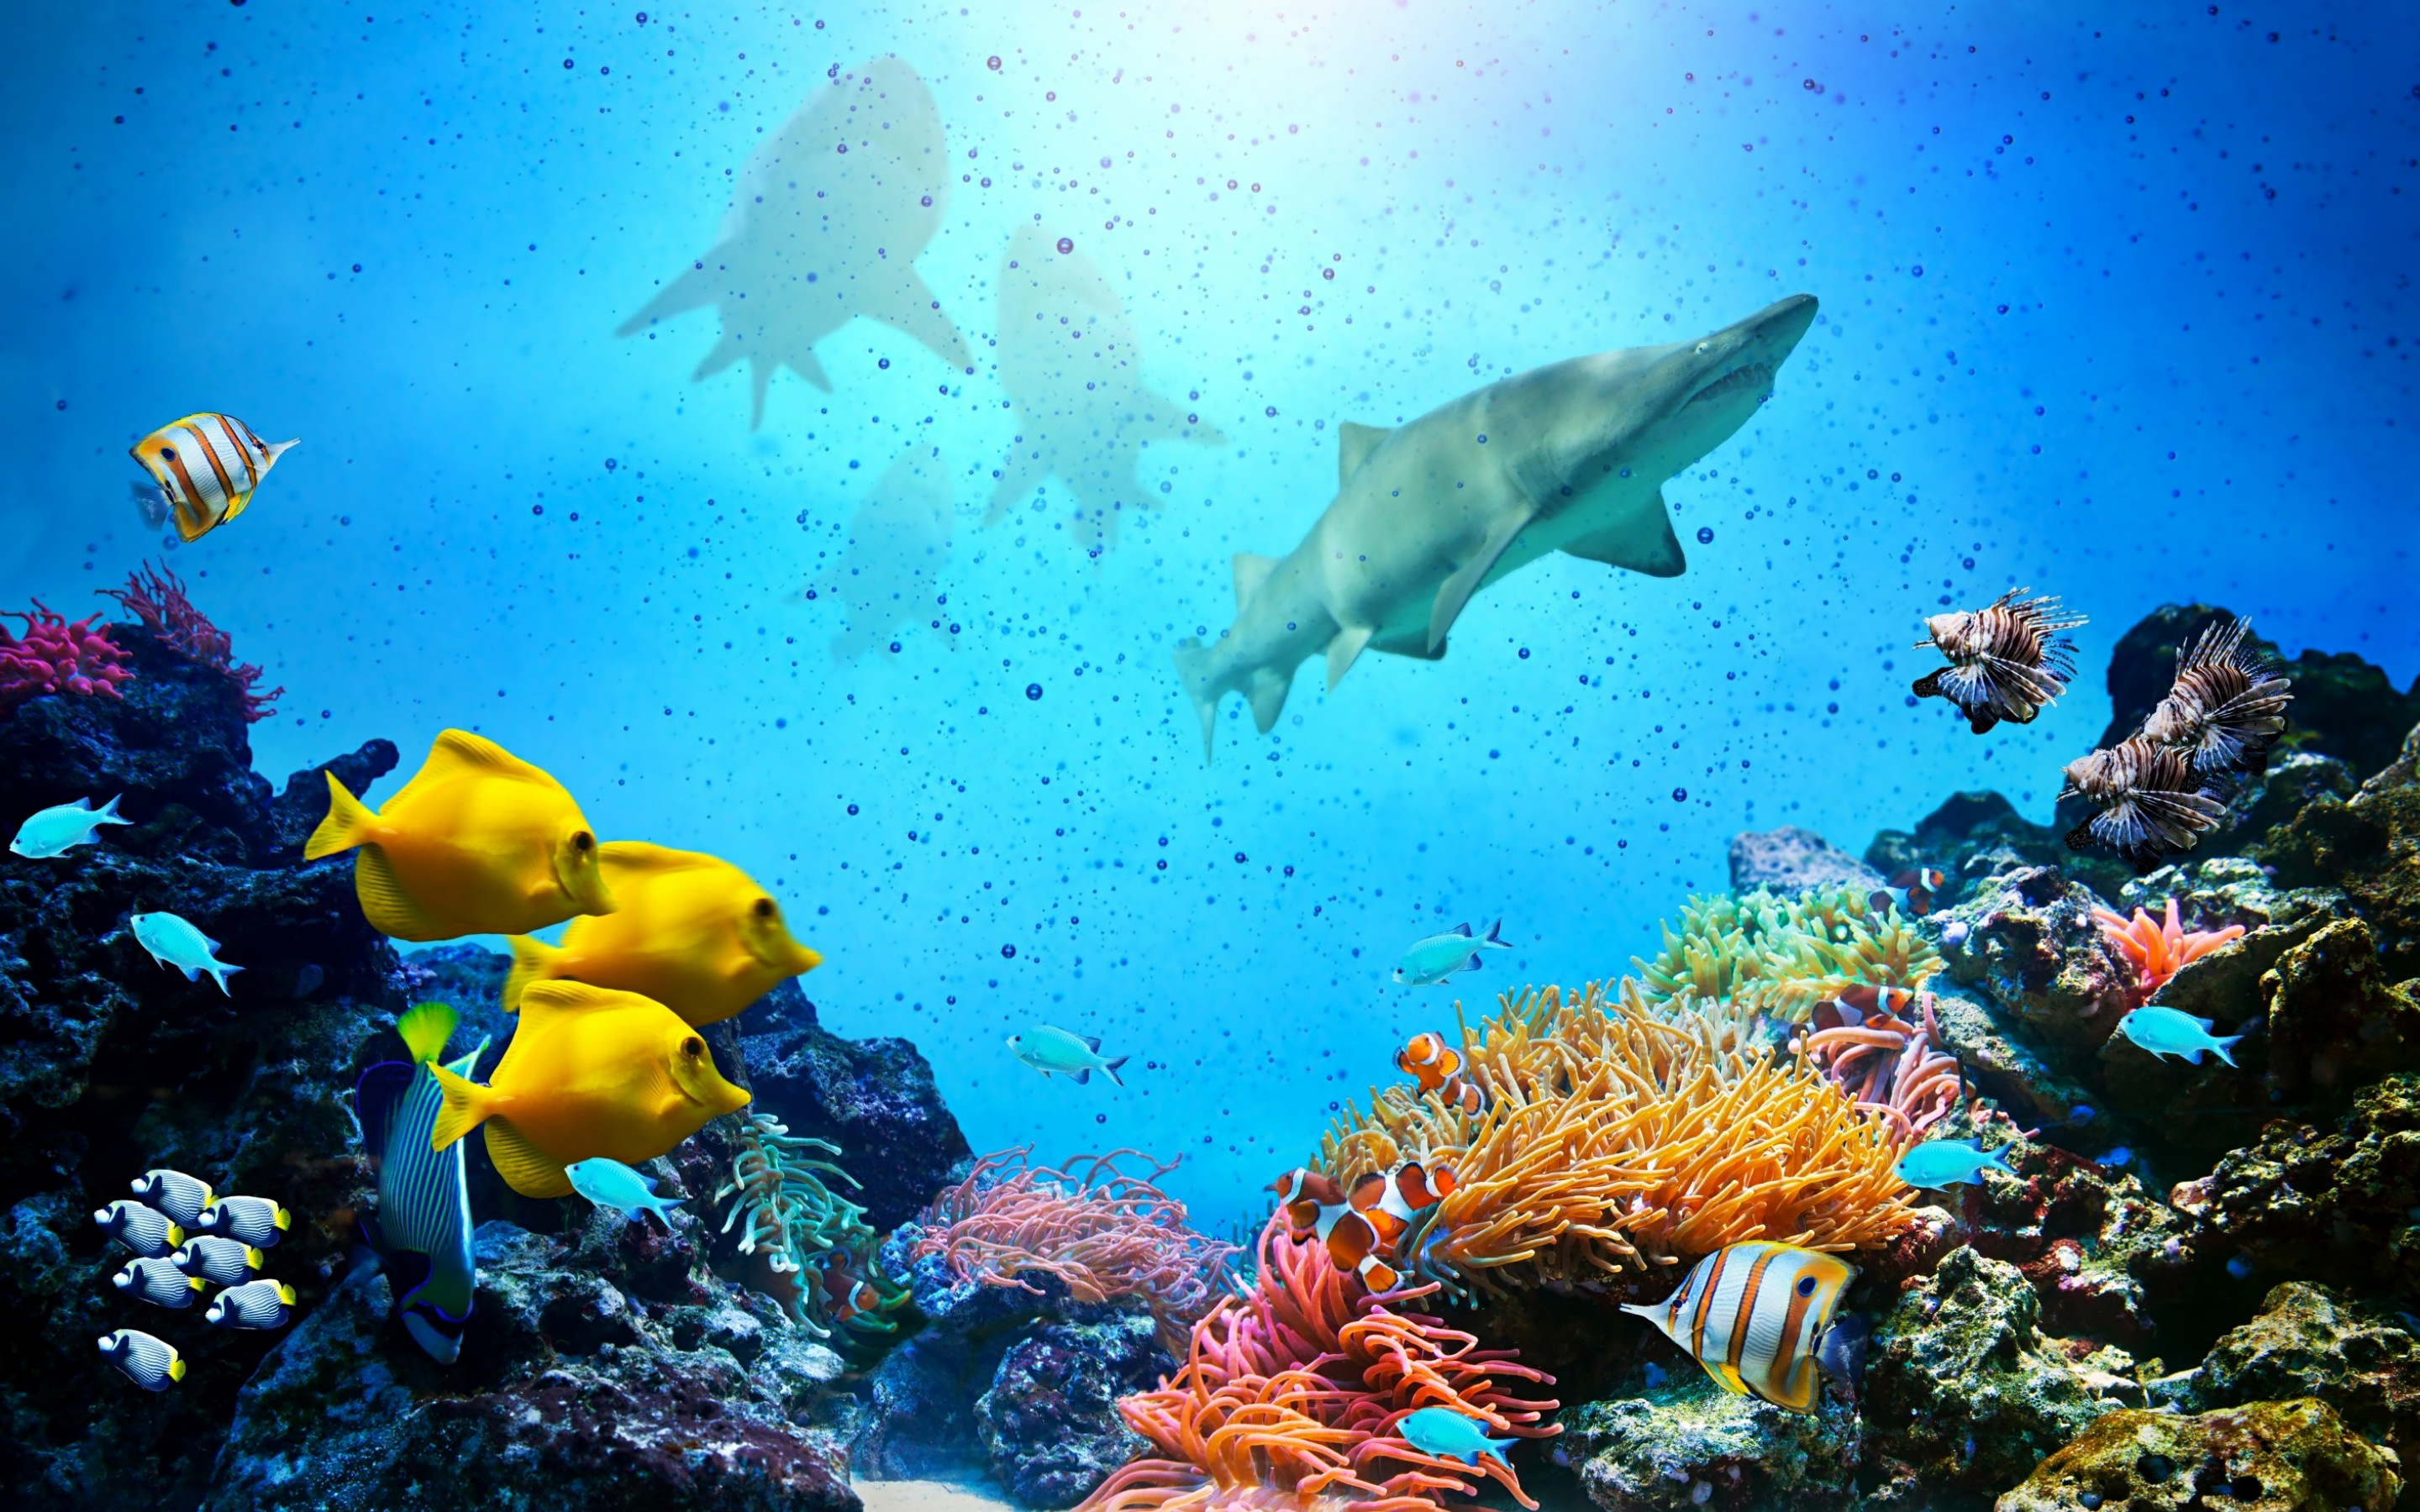 Wallpaper Fish and sharks in the ocean